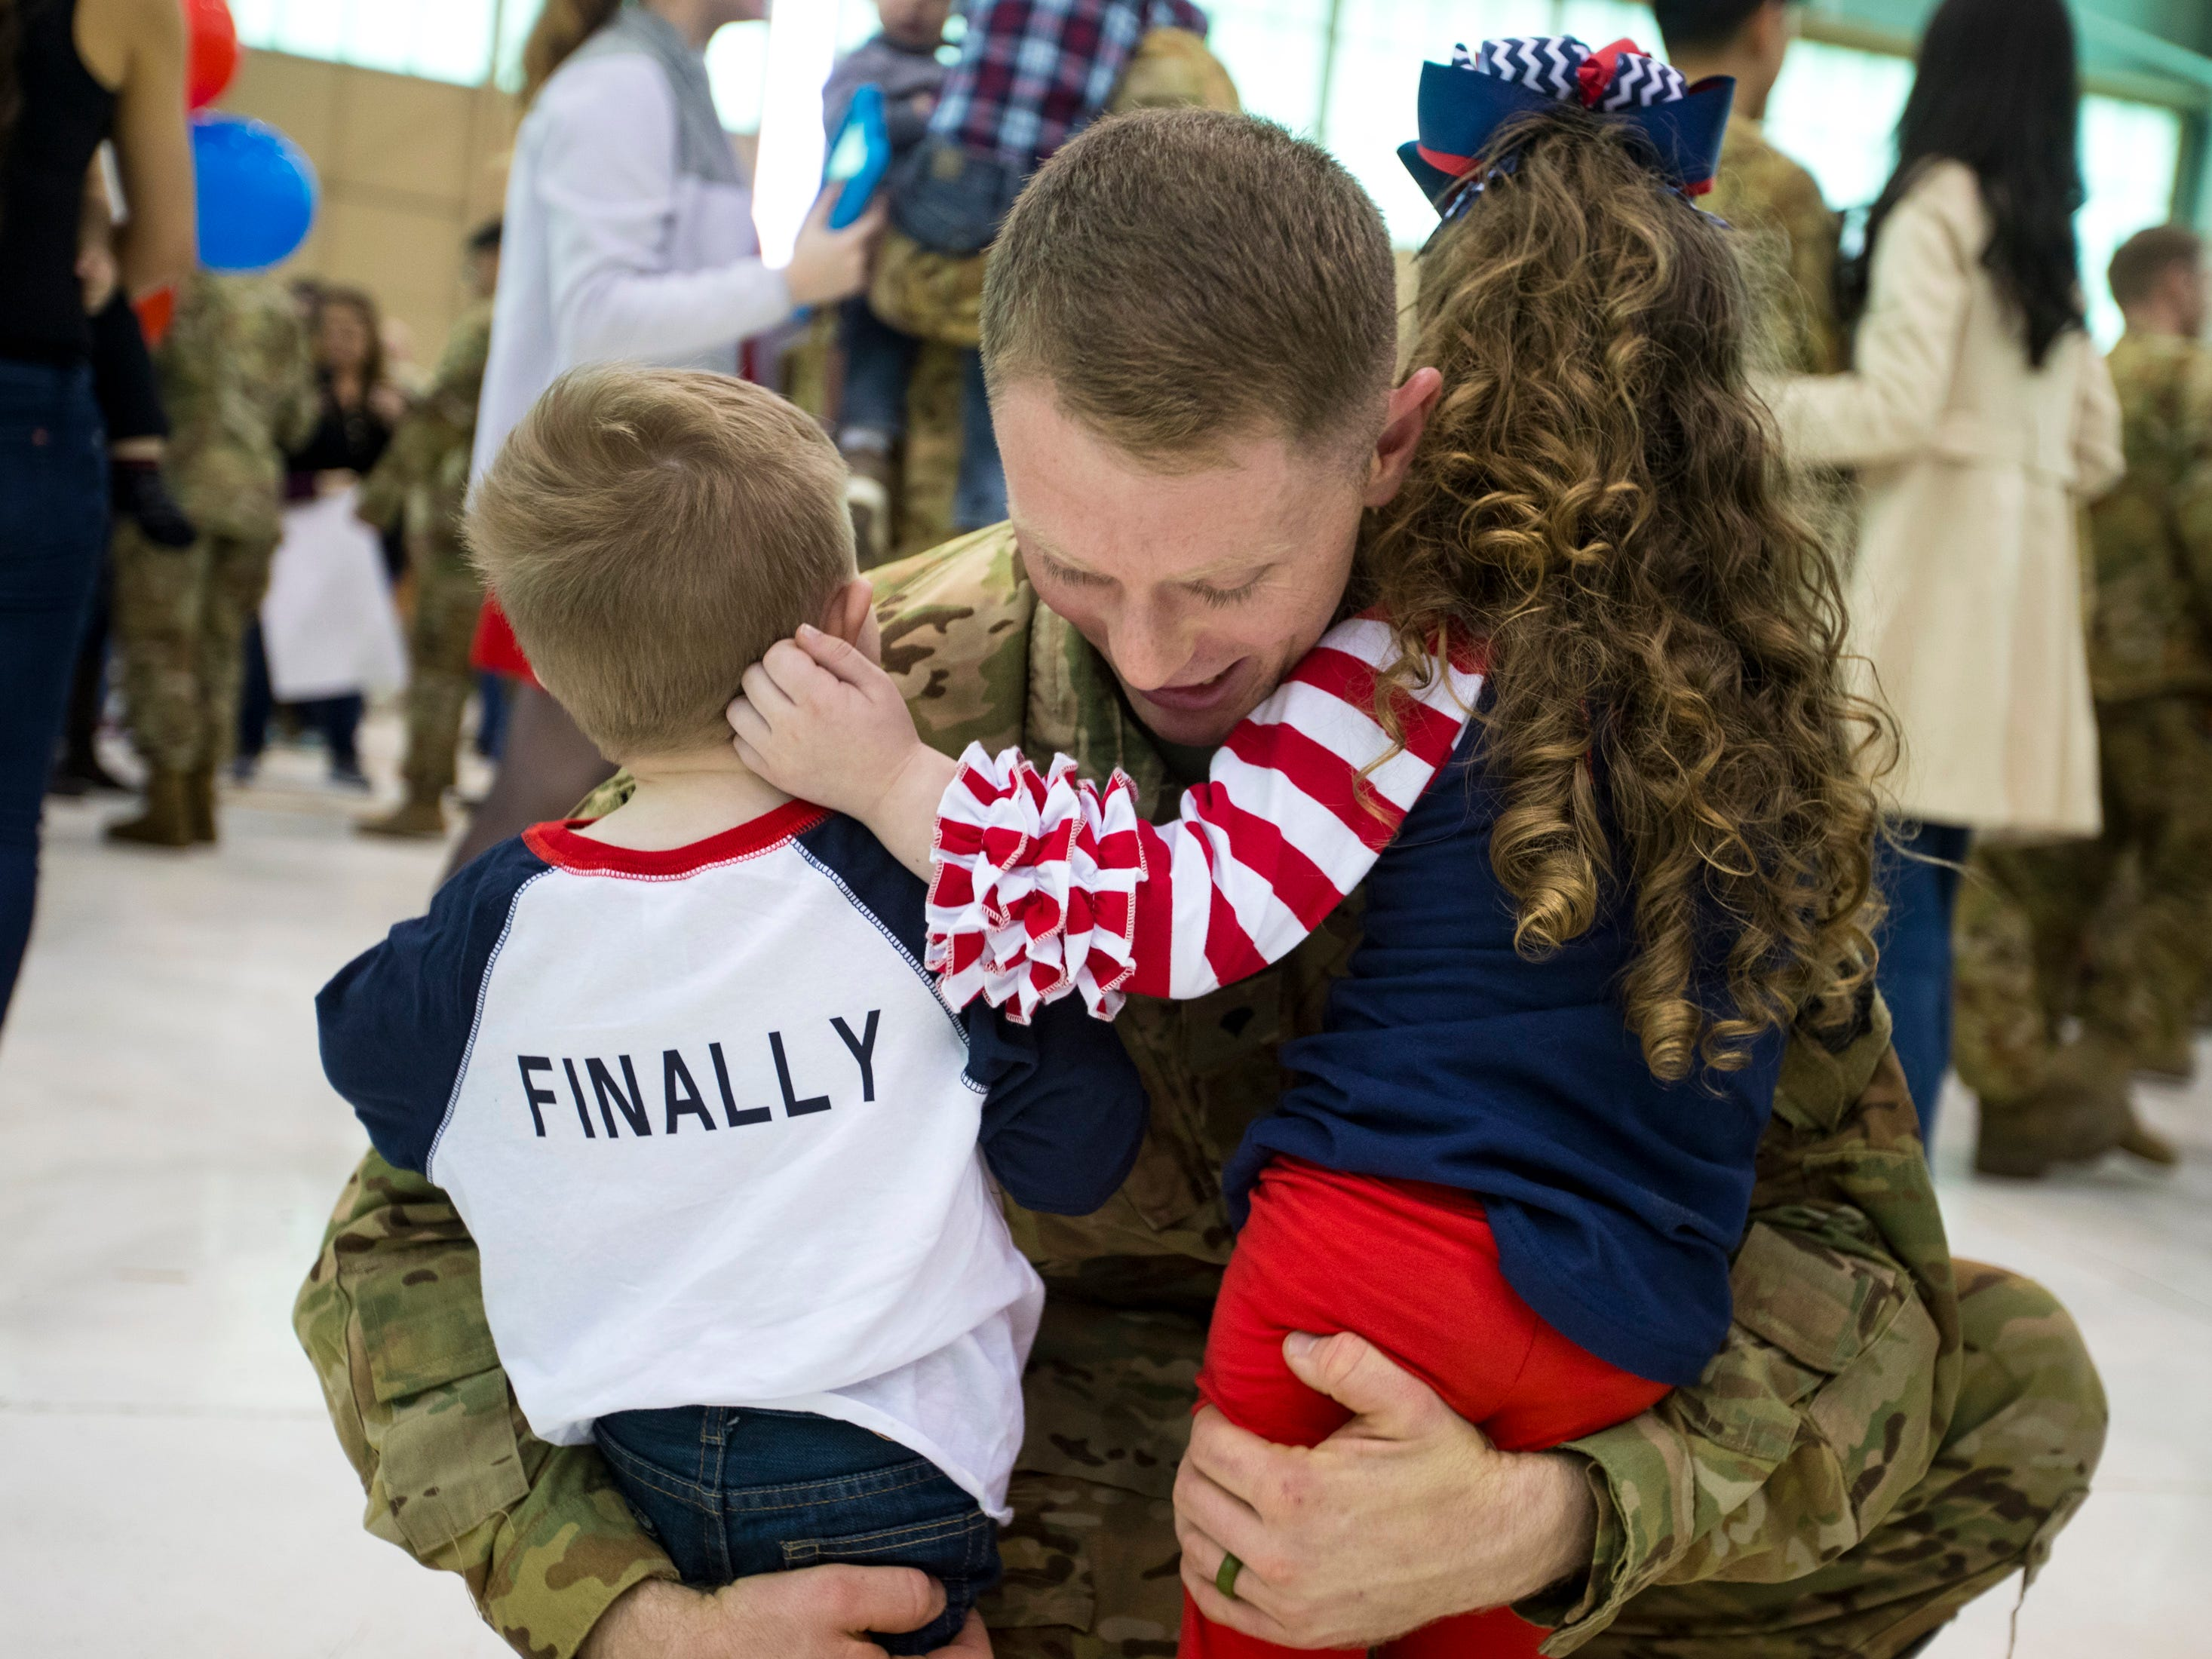 Specialist Travis Young hugs his children Dawson Young, 2, and McKenna Young, 4, during the welcome home ceremony for members of the 101st Combat Aviation Brigade at Fort Campbell in Clarksville on Tuesday, Feb. 5, 2019. The soldiers were returning from a nine-month deployment to Afghanistan.